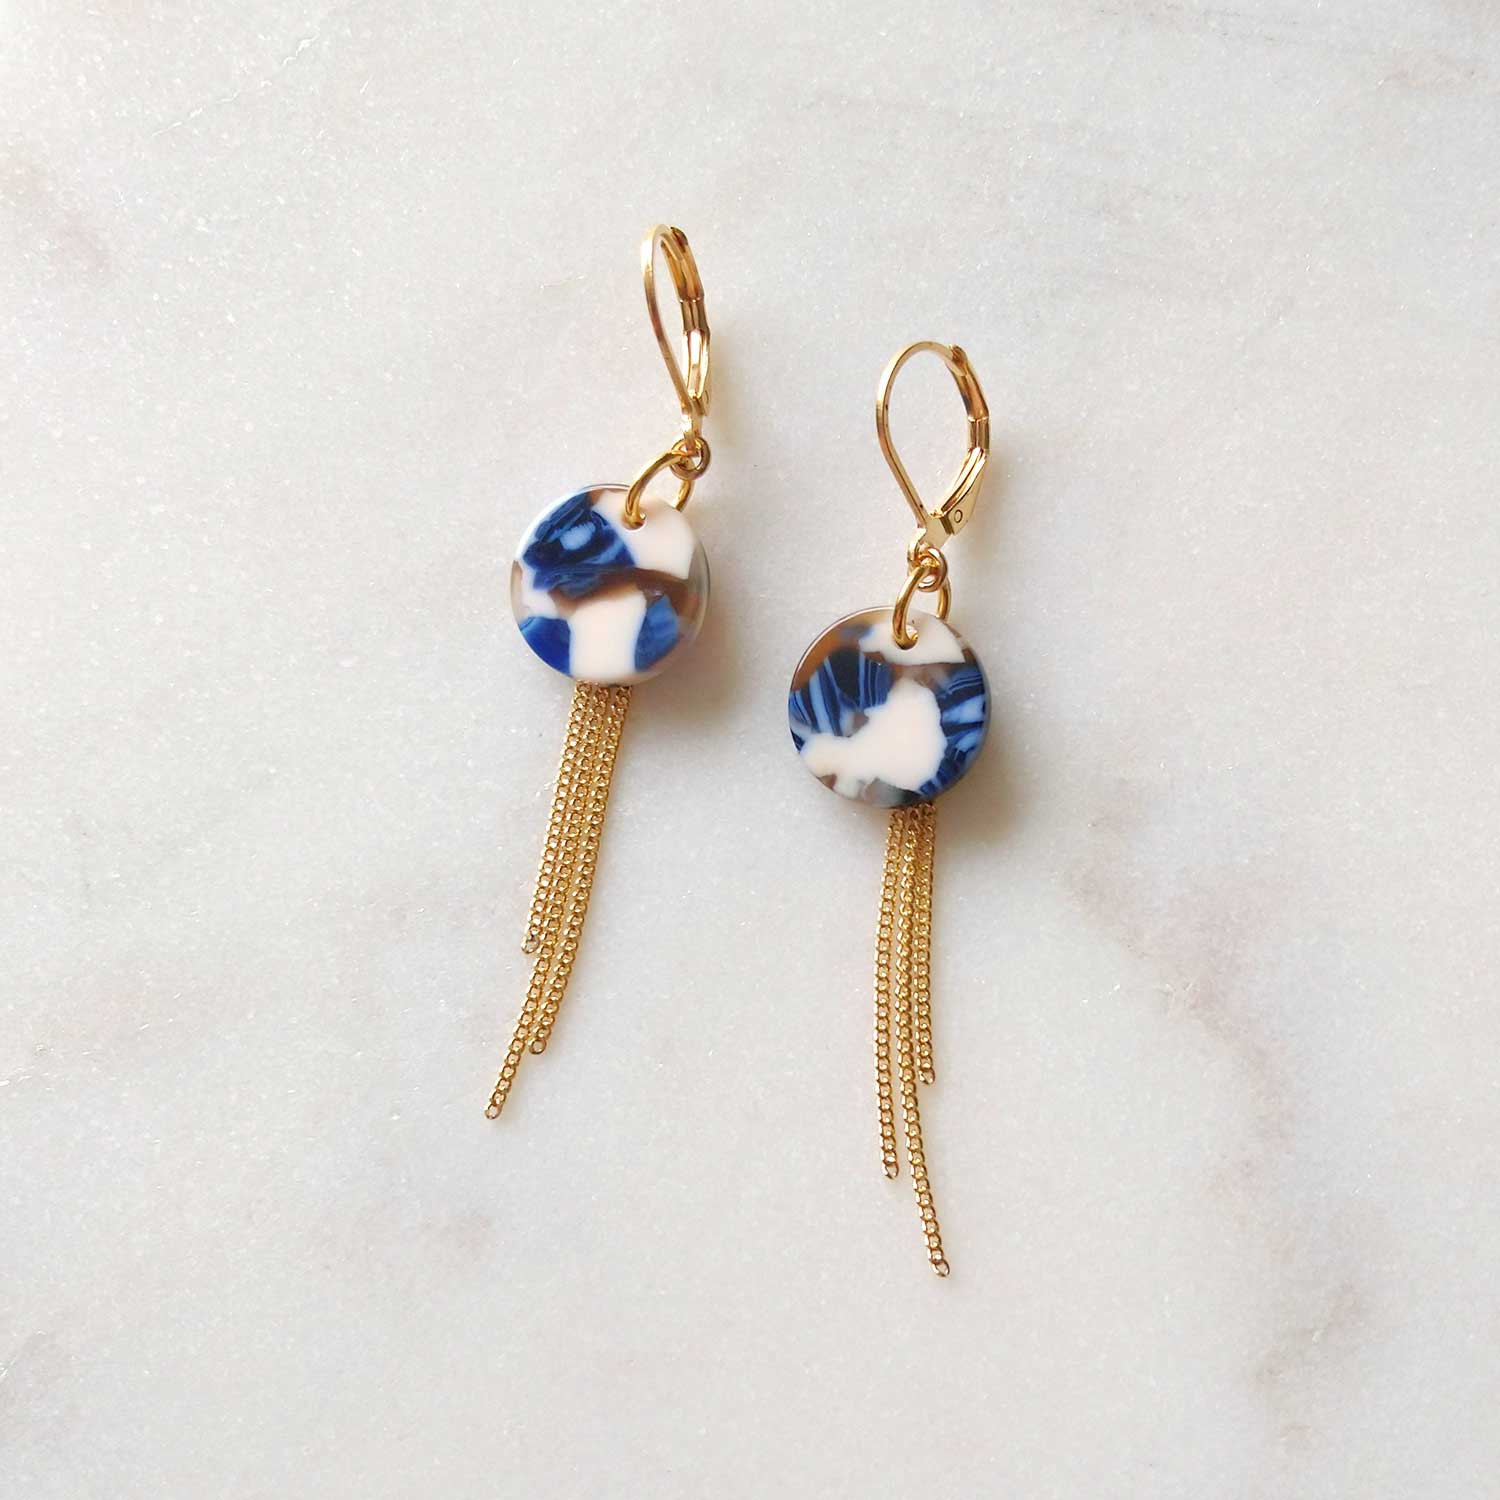 Blue and white earrings gold